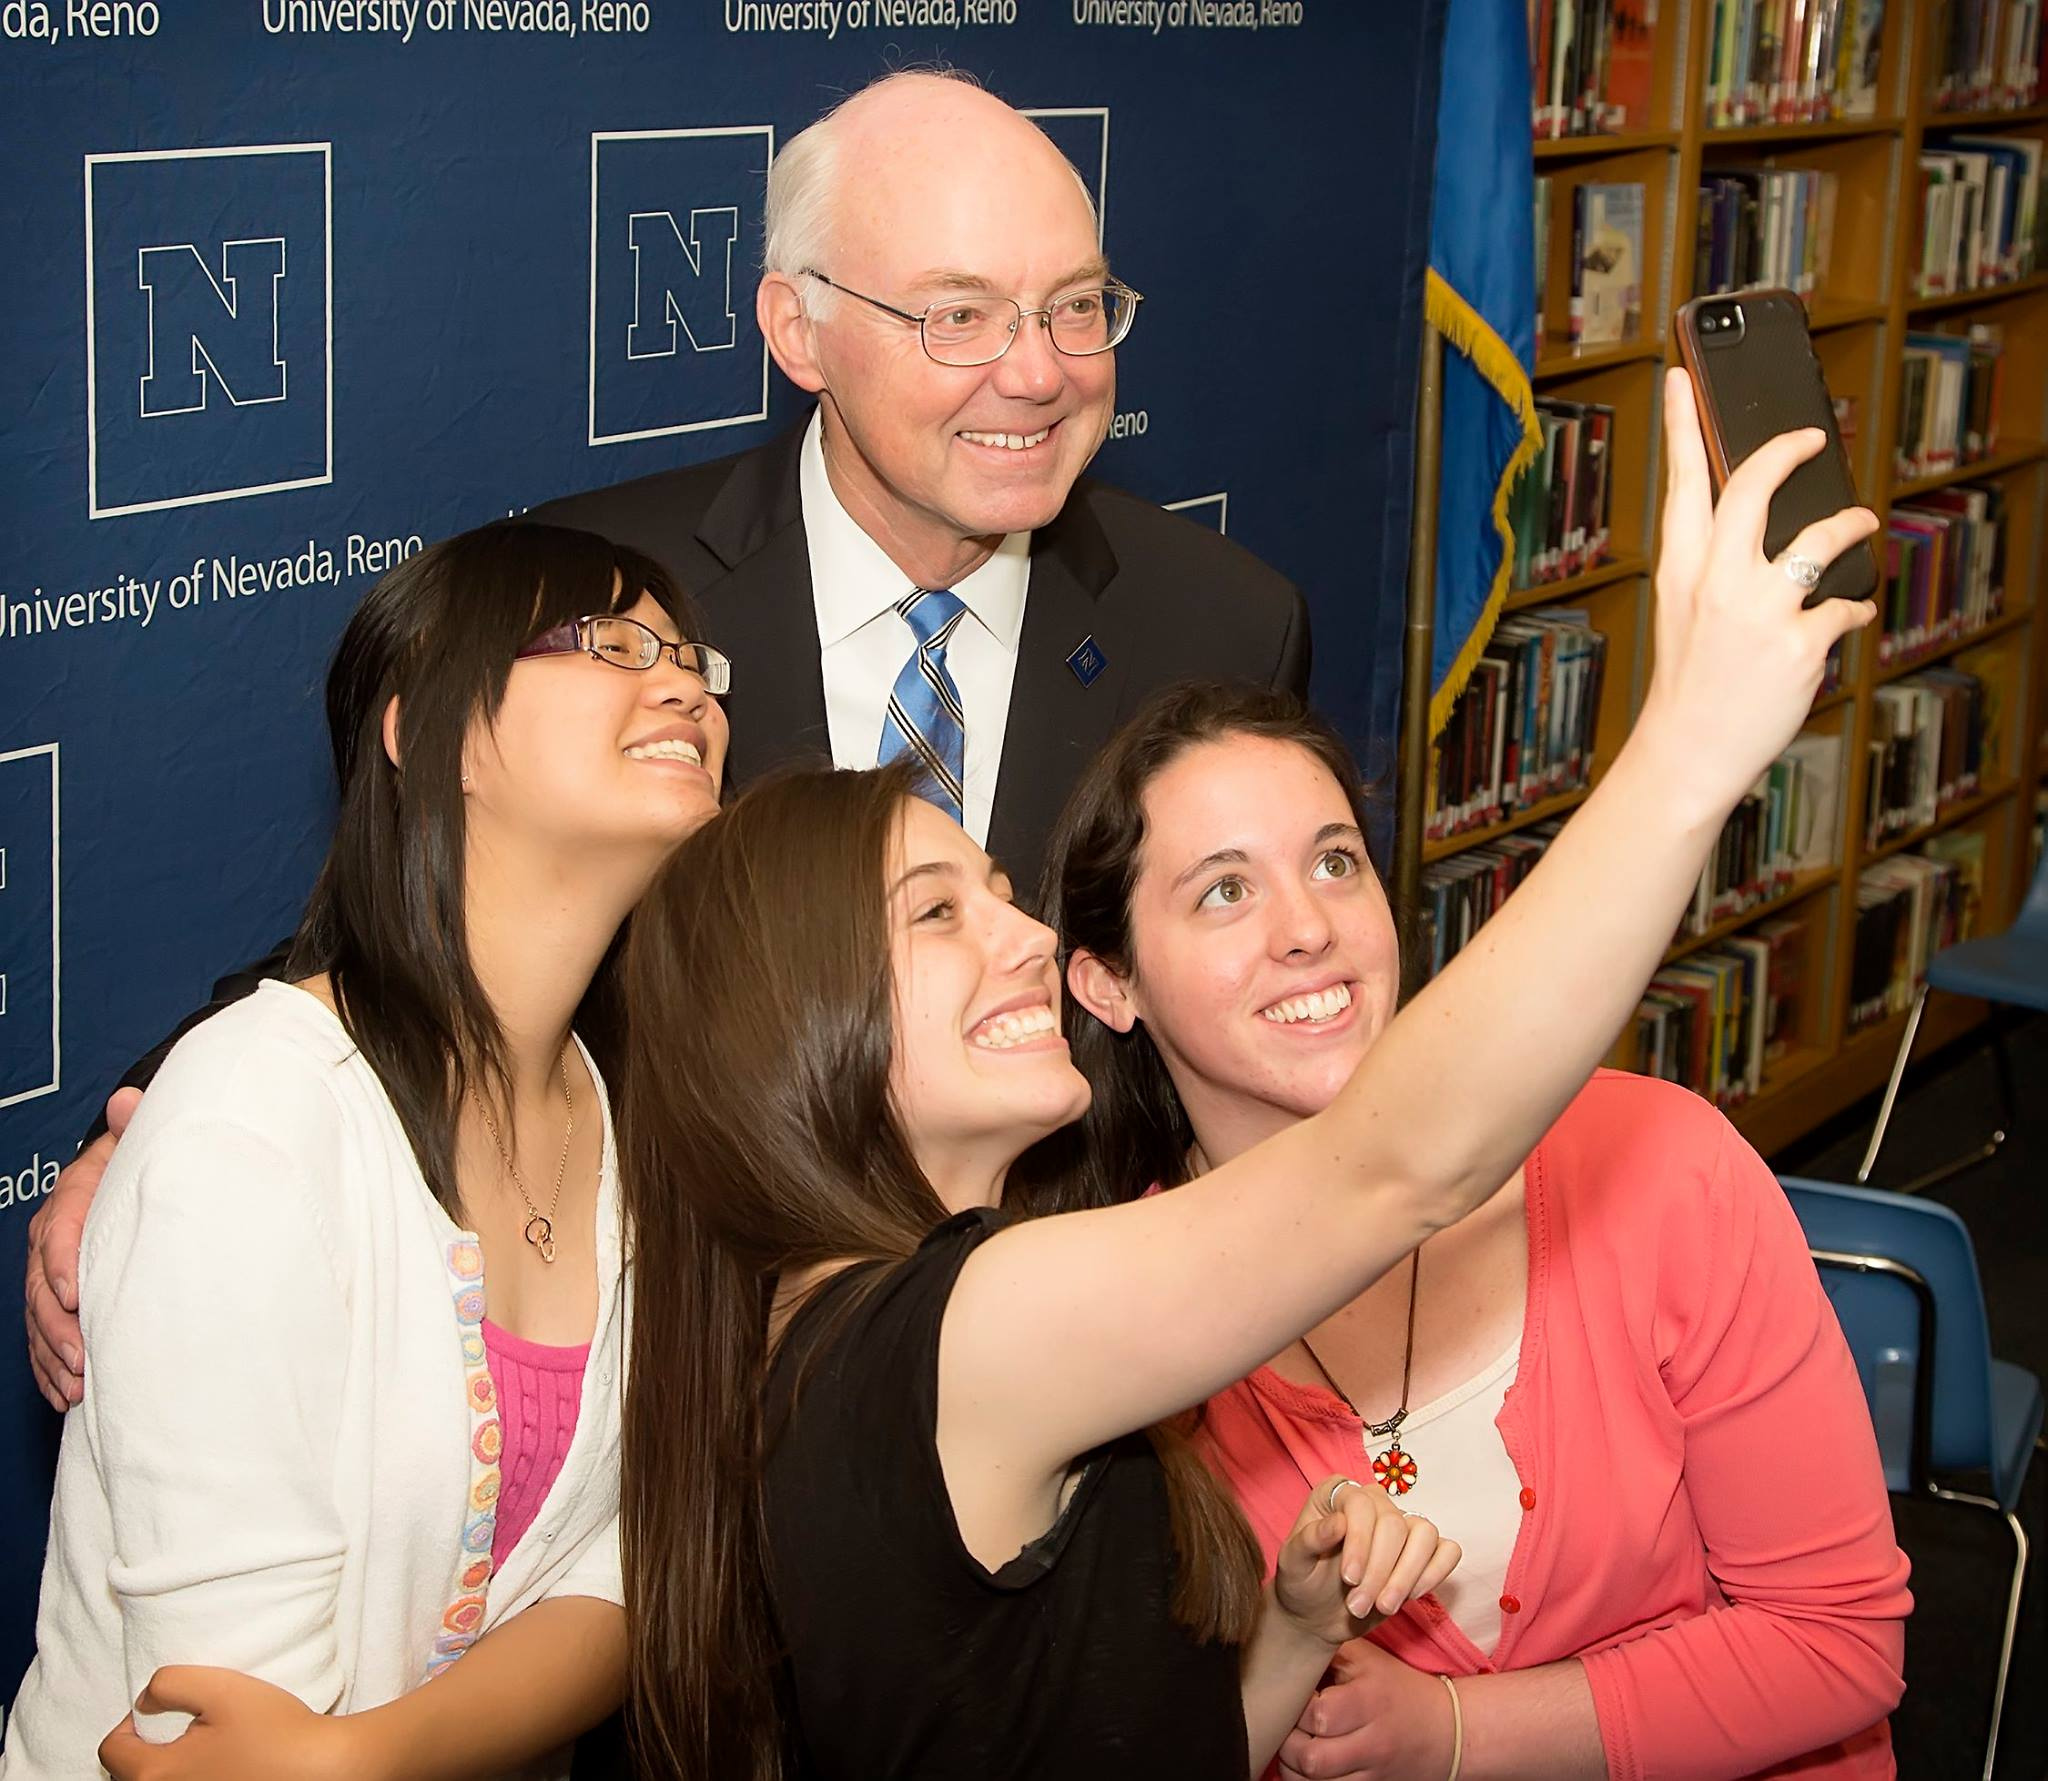 UNR's President, Marc Johnson, taking a selfie three UNR students.